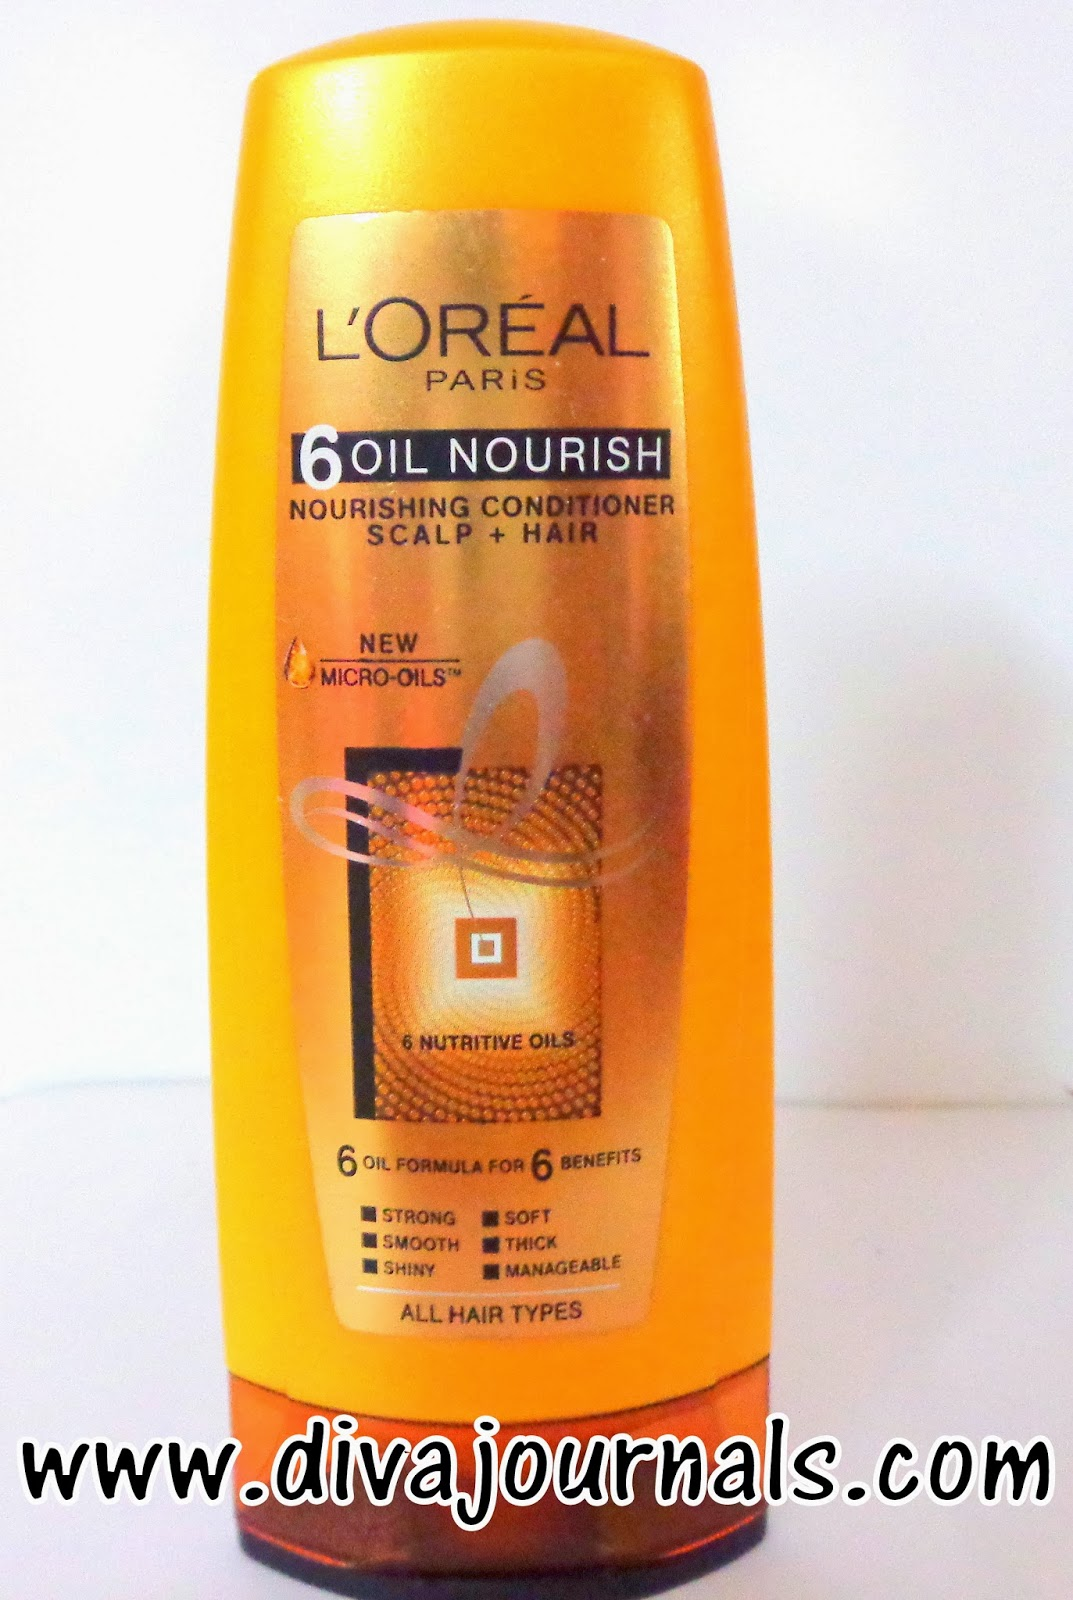 Loreal Paris 6 Oil Nourishing Shampoo&Conditioner Review